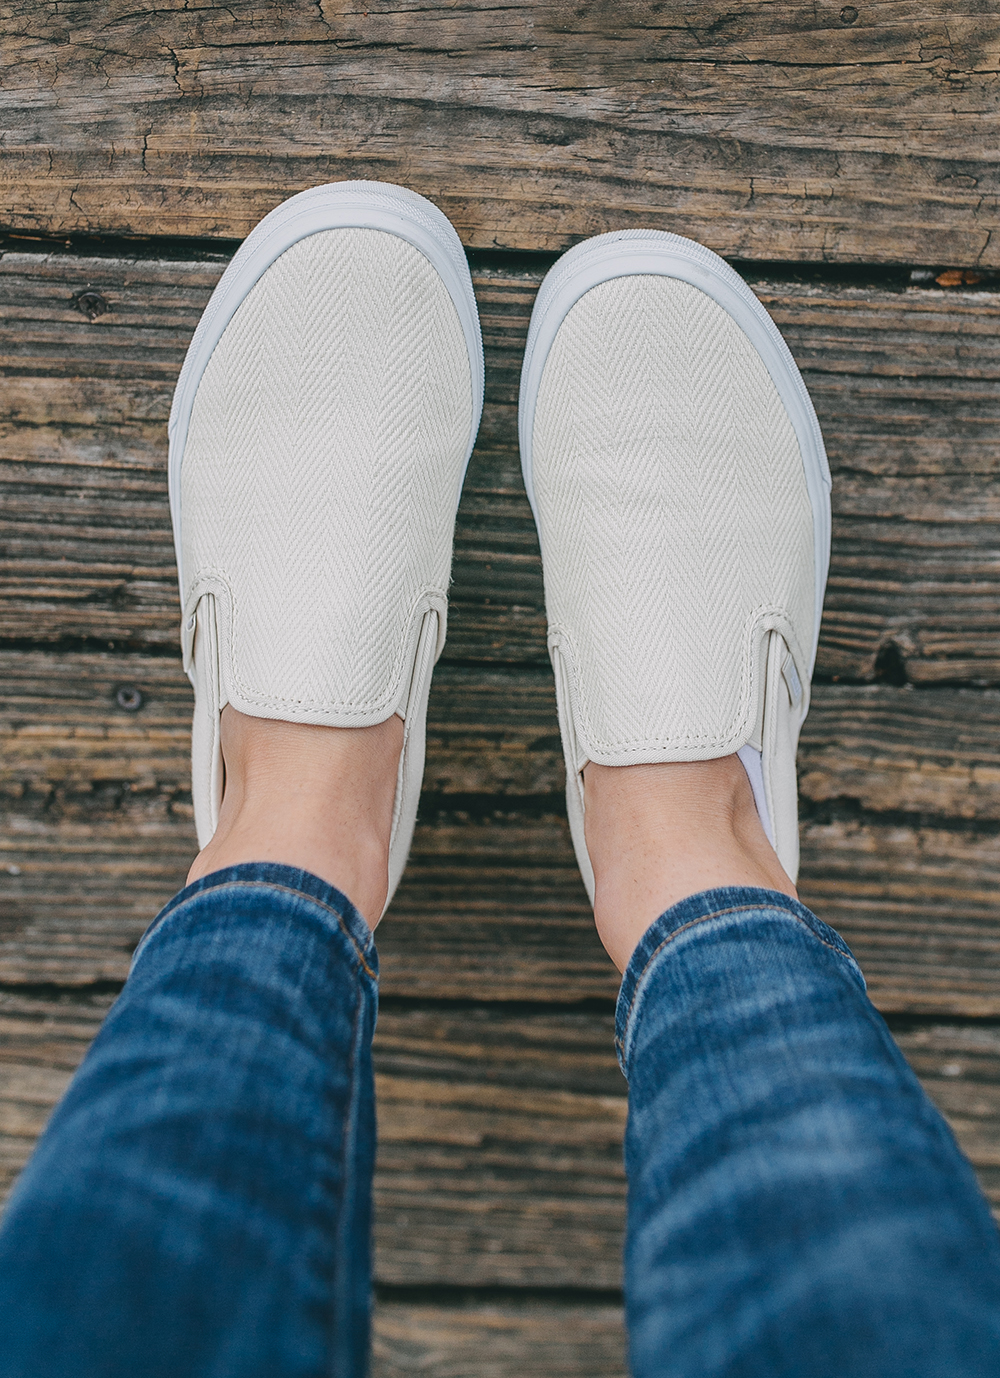 livvyland-blog-olivia-watson-austin-texas-lifestyle-motherhood-blogger-mozarts-coffee-vans-slip-on-white